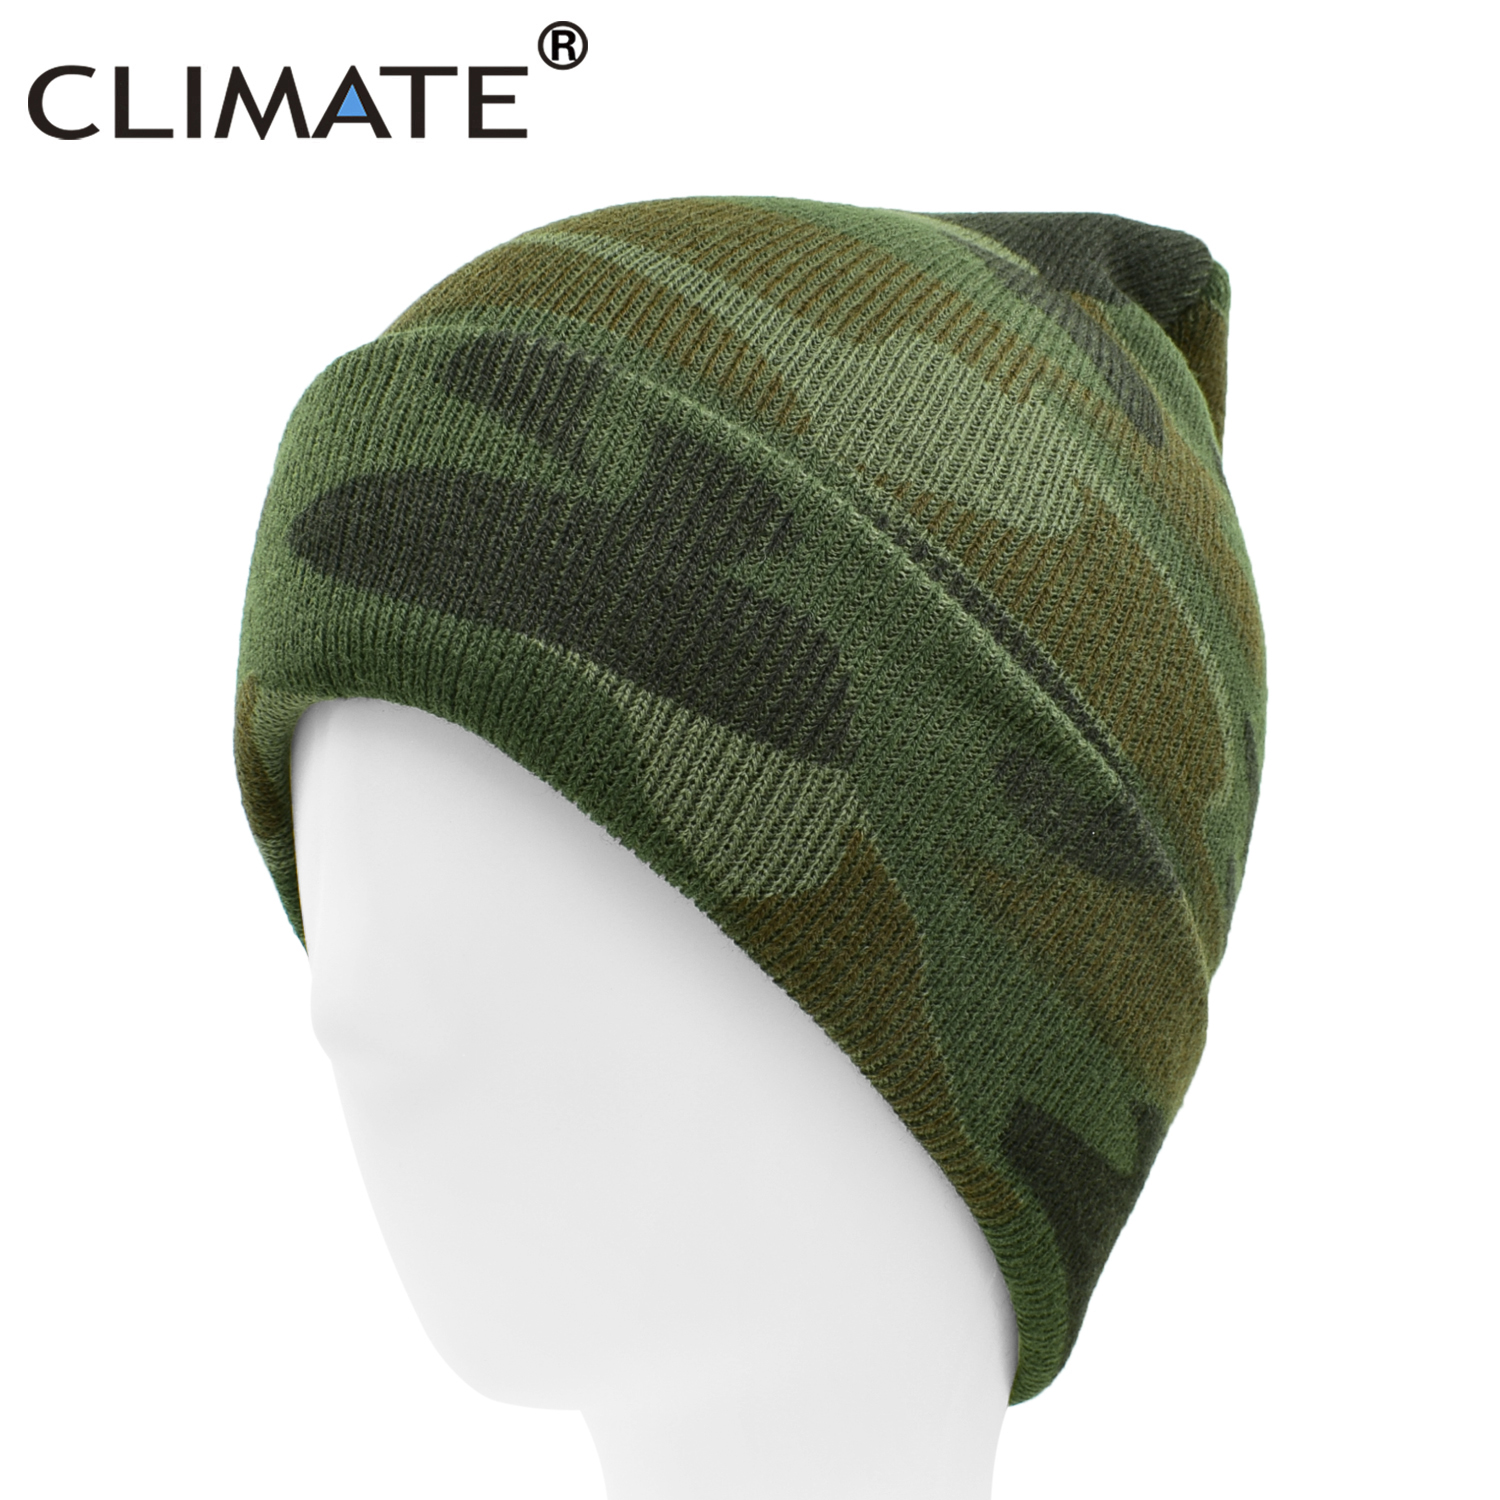 CLIMATE Camouflage Beanie Hat Men Beanies Men Winter Warm Hats Beanies Camou Hat Military Army Cool Knitted Beanie Hat For Men